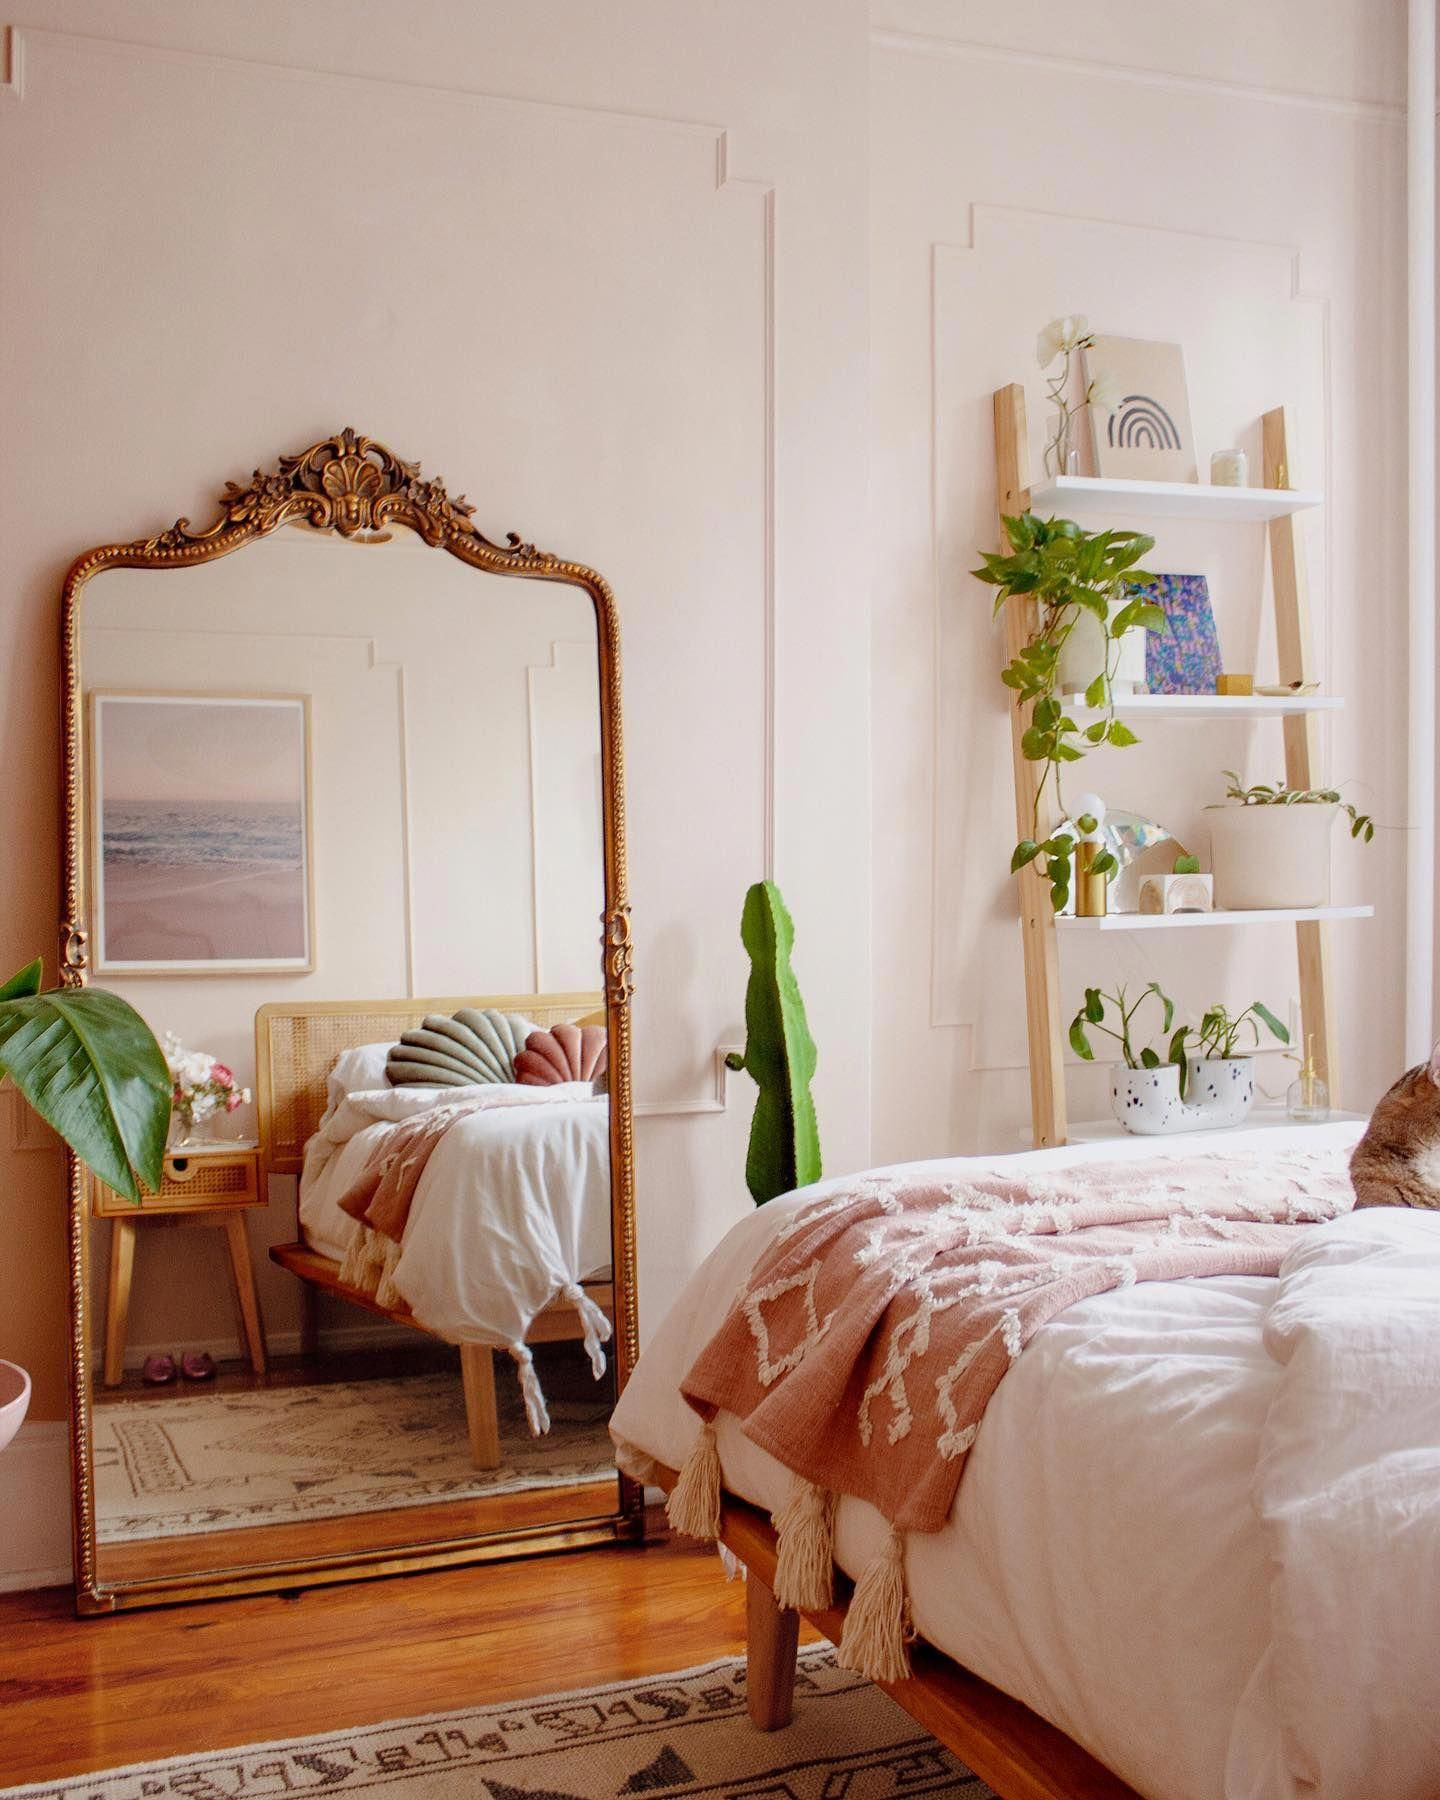 """A tiny room made to feel bigger thanks to this mirror and David's plea to rearrange a bedroom so small that I didn't think there could be any other layout options. People comment all the time about how """"large"""" our apartment seems, and I �� every time since I know the truth.. IT SMALL. #vintagebedroom"""